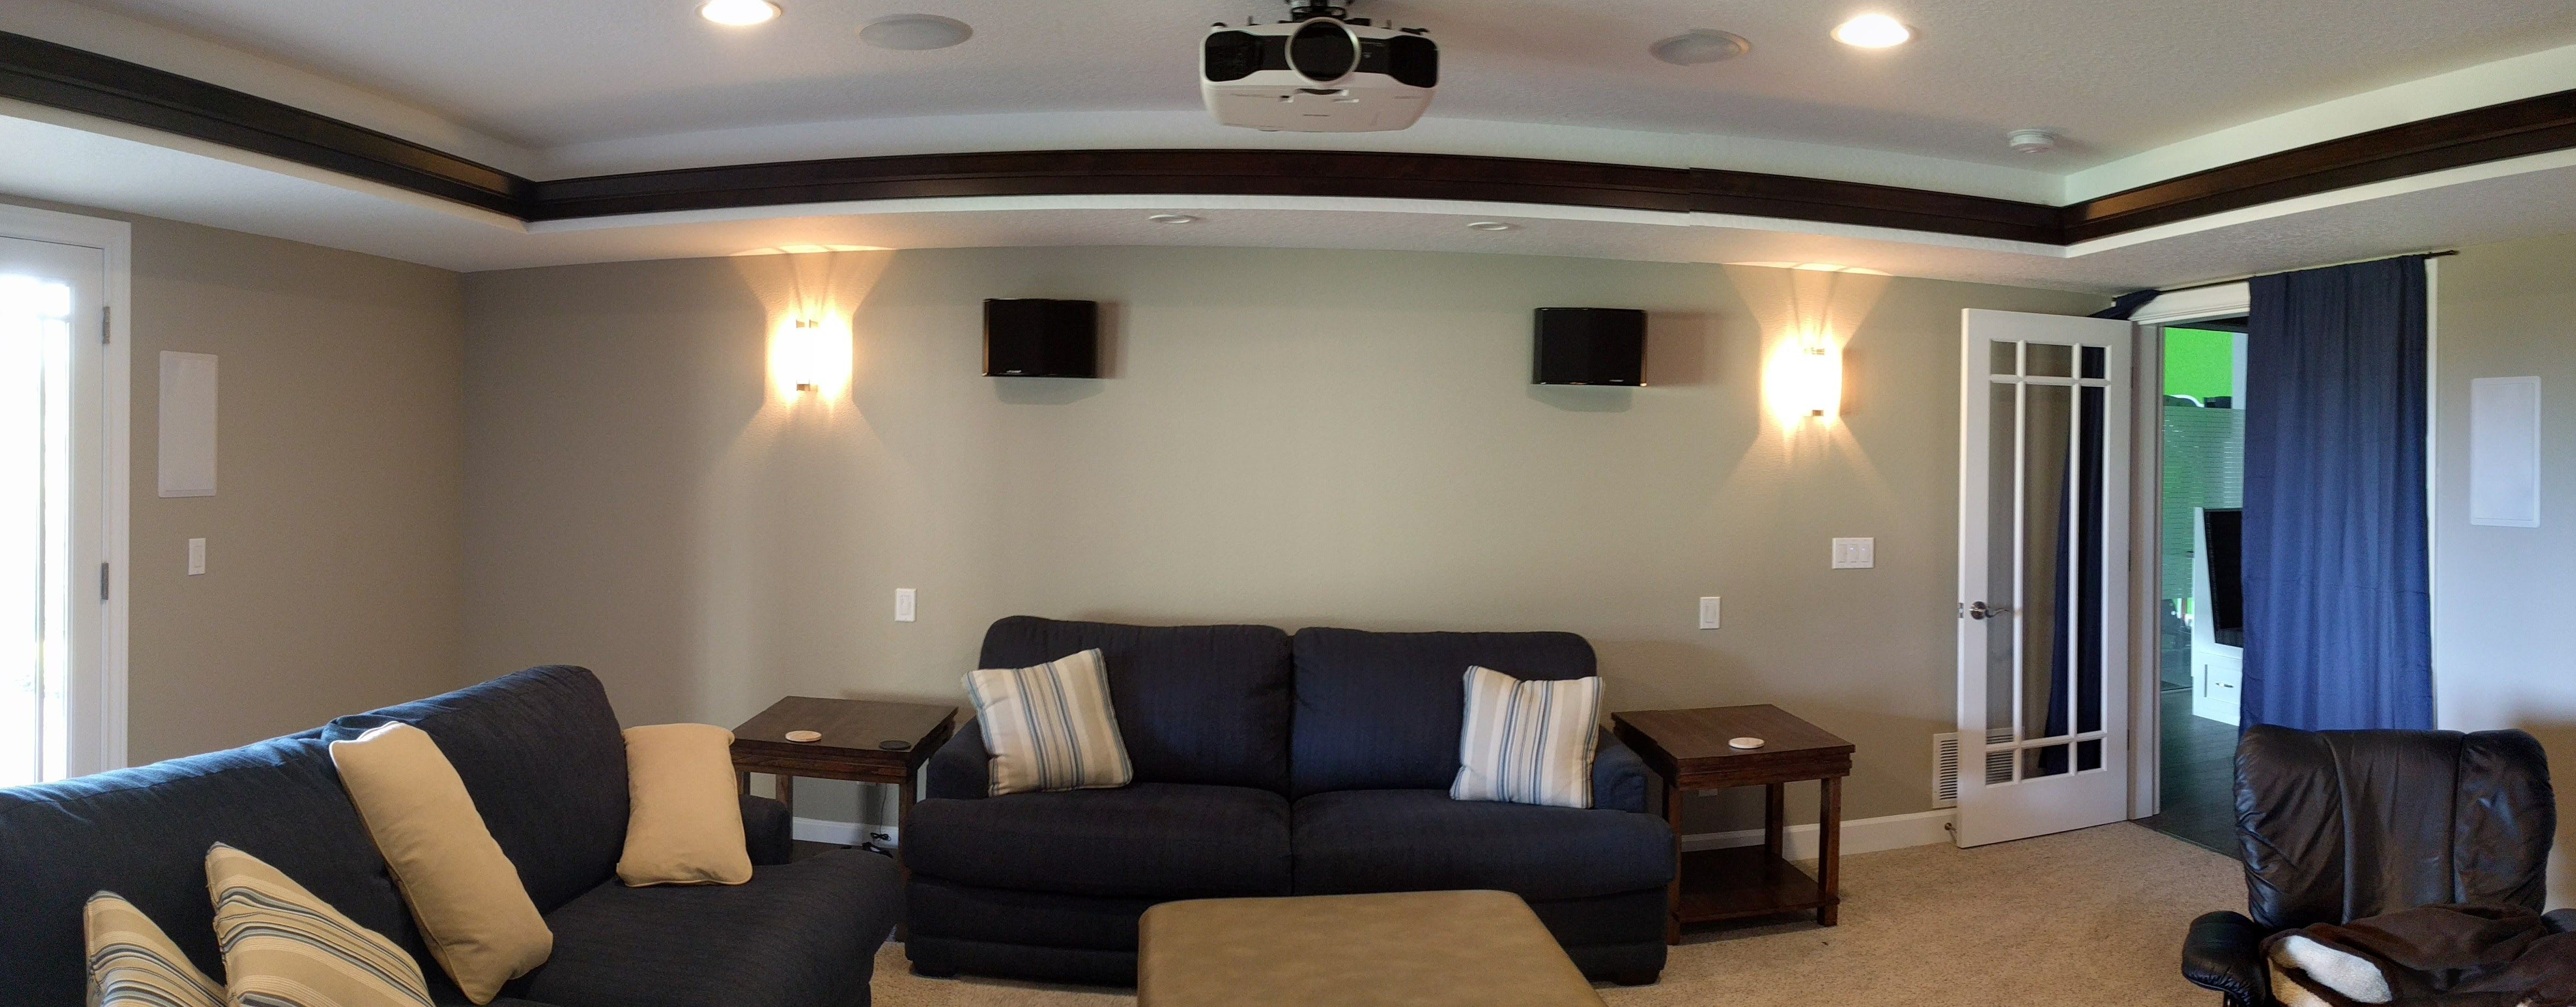 Design And Construction Of A Daylight Basement Home Theater Room